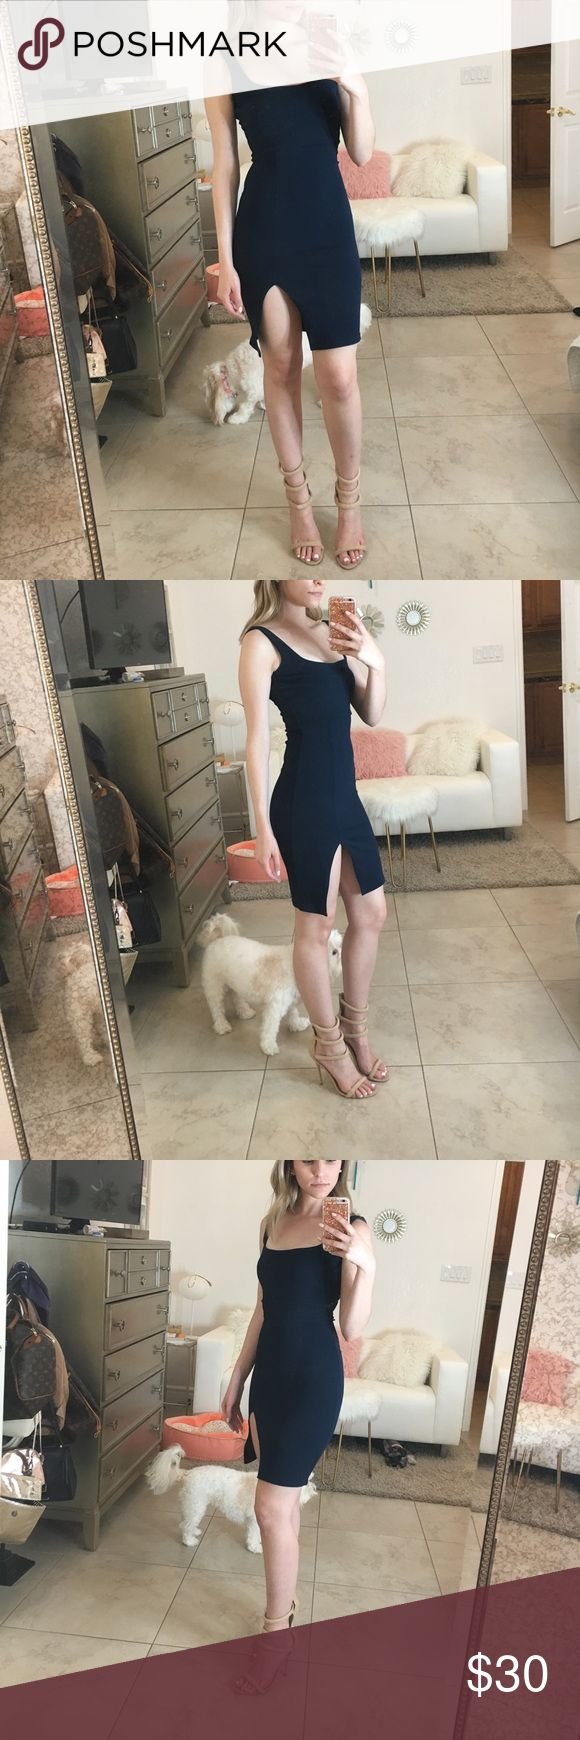 Misguided square neck side split midi dress navy Beautiful fit and color. Definite show stopper!! Missguided Dresses Mini